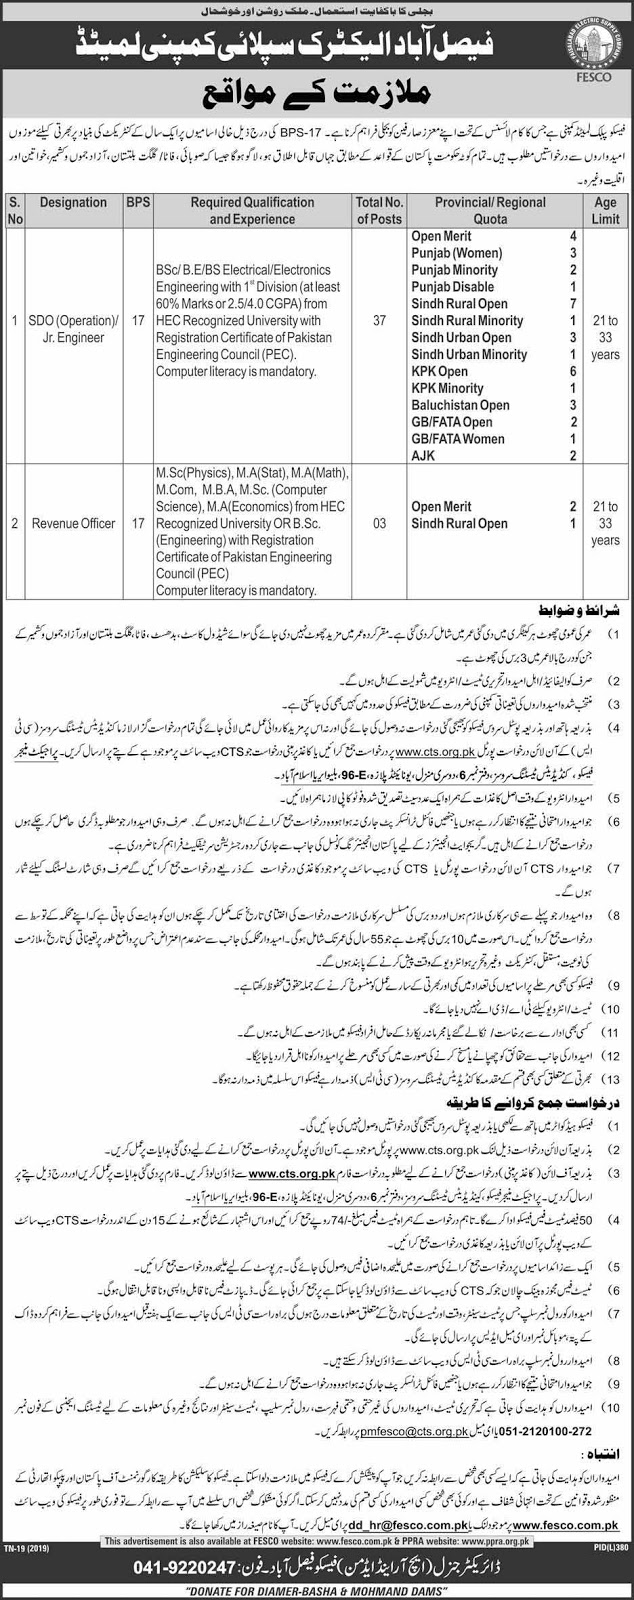 SDO and Reveue Officer Job in FESCO 2019